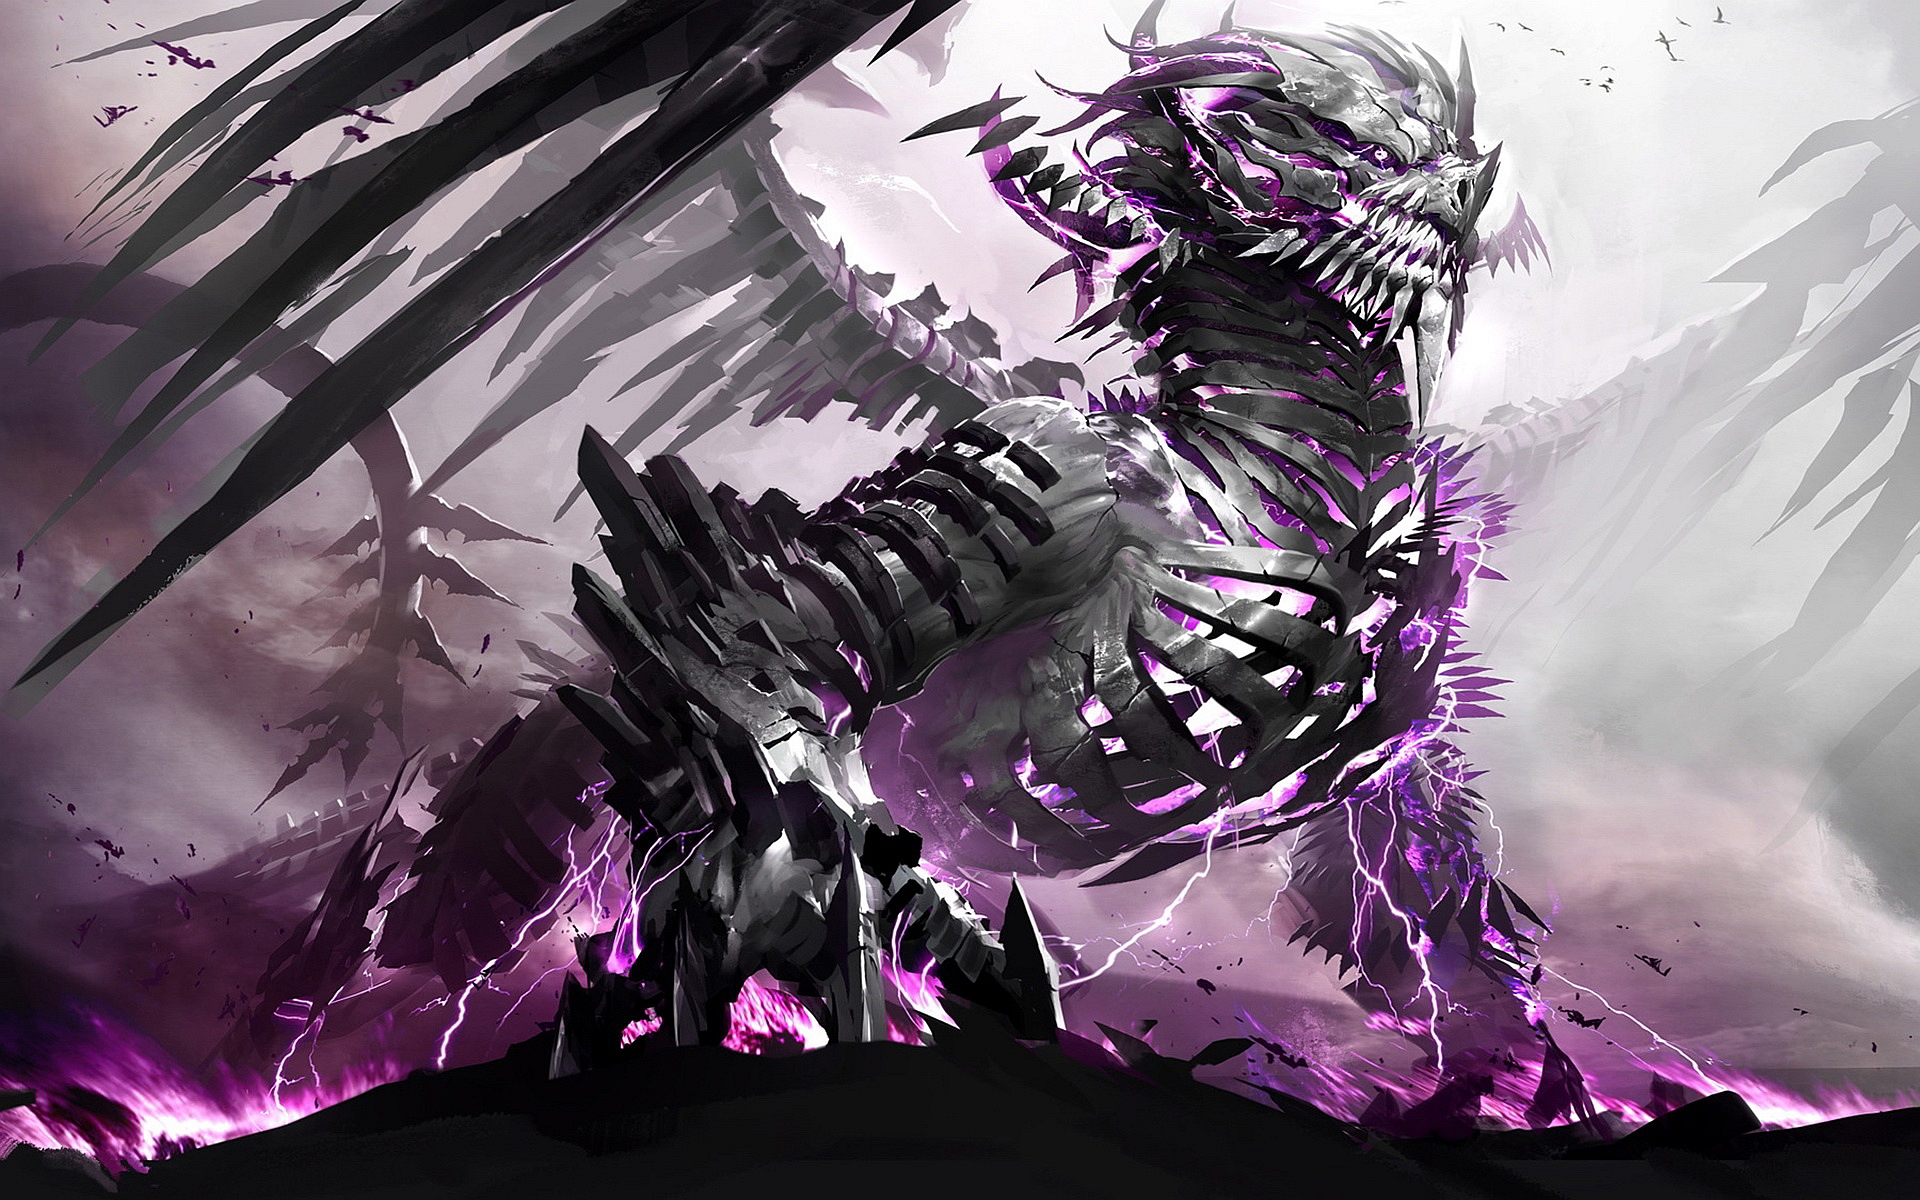 Free Download Coolest Dragon Wallpapers Dragon City Guide 1920x1200 For Your Desktop Mobile Tablet Explore 74 Cool Dragons Wallpaper Dragon Pics Wallpaper Dragon Desktop Wallpaper Dragon Wallpapers Free Download